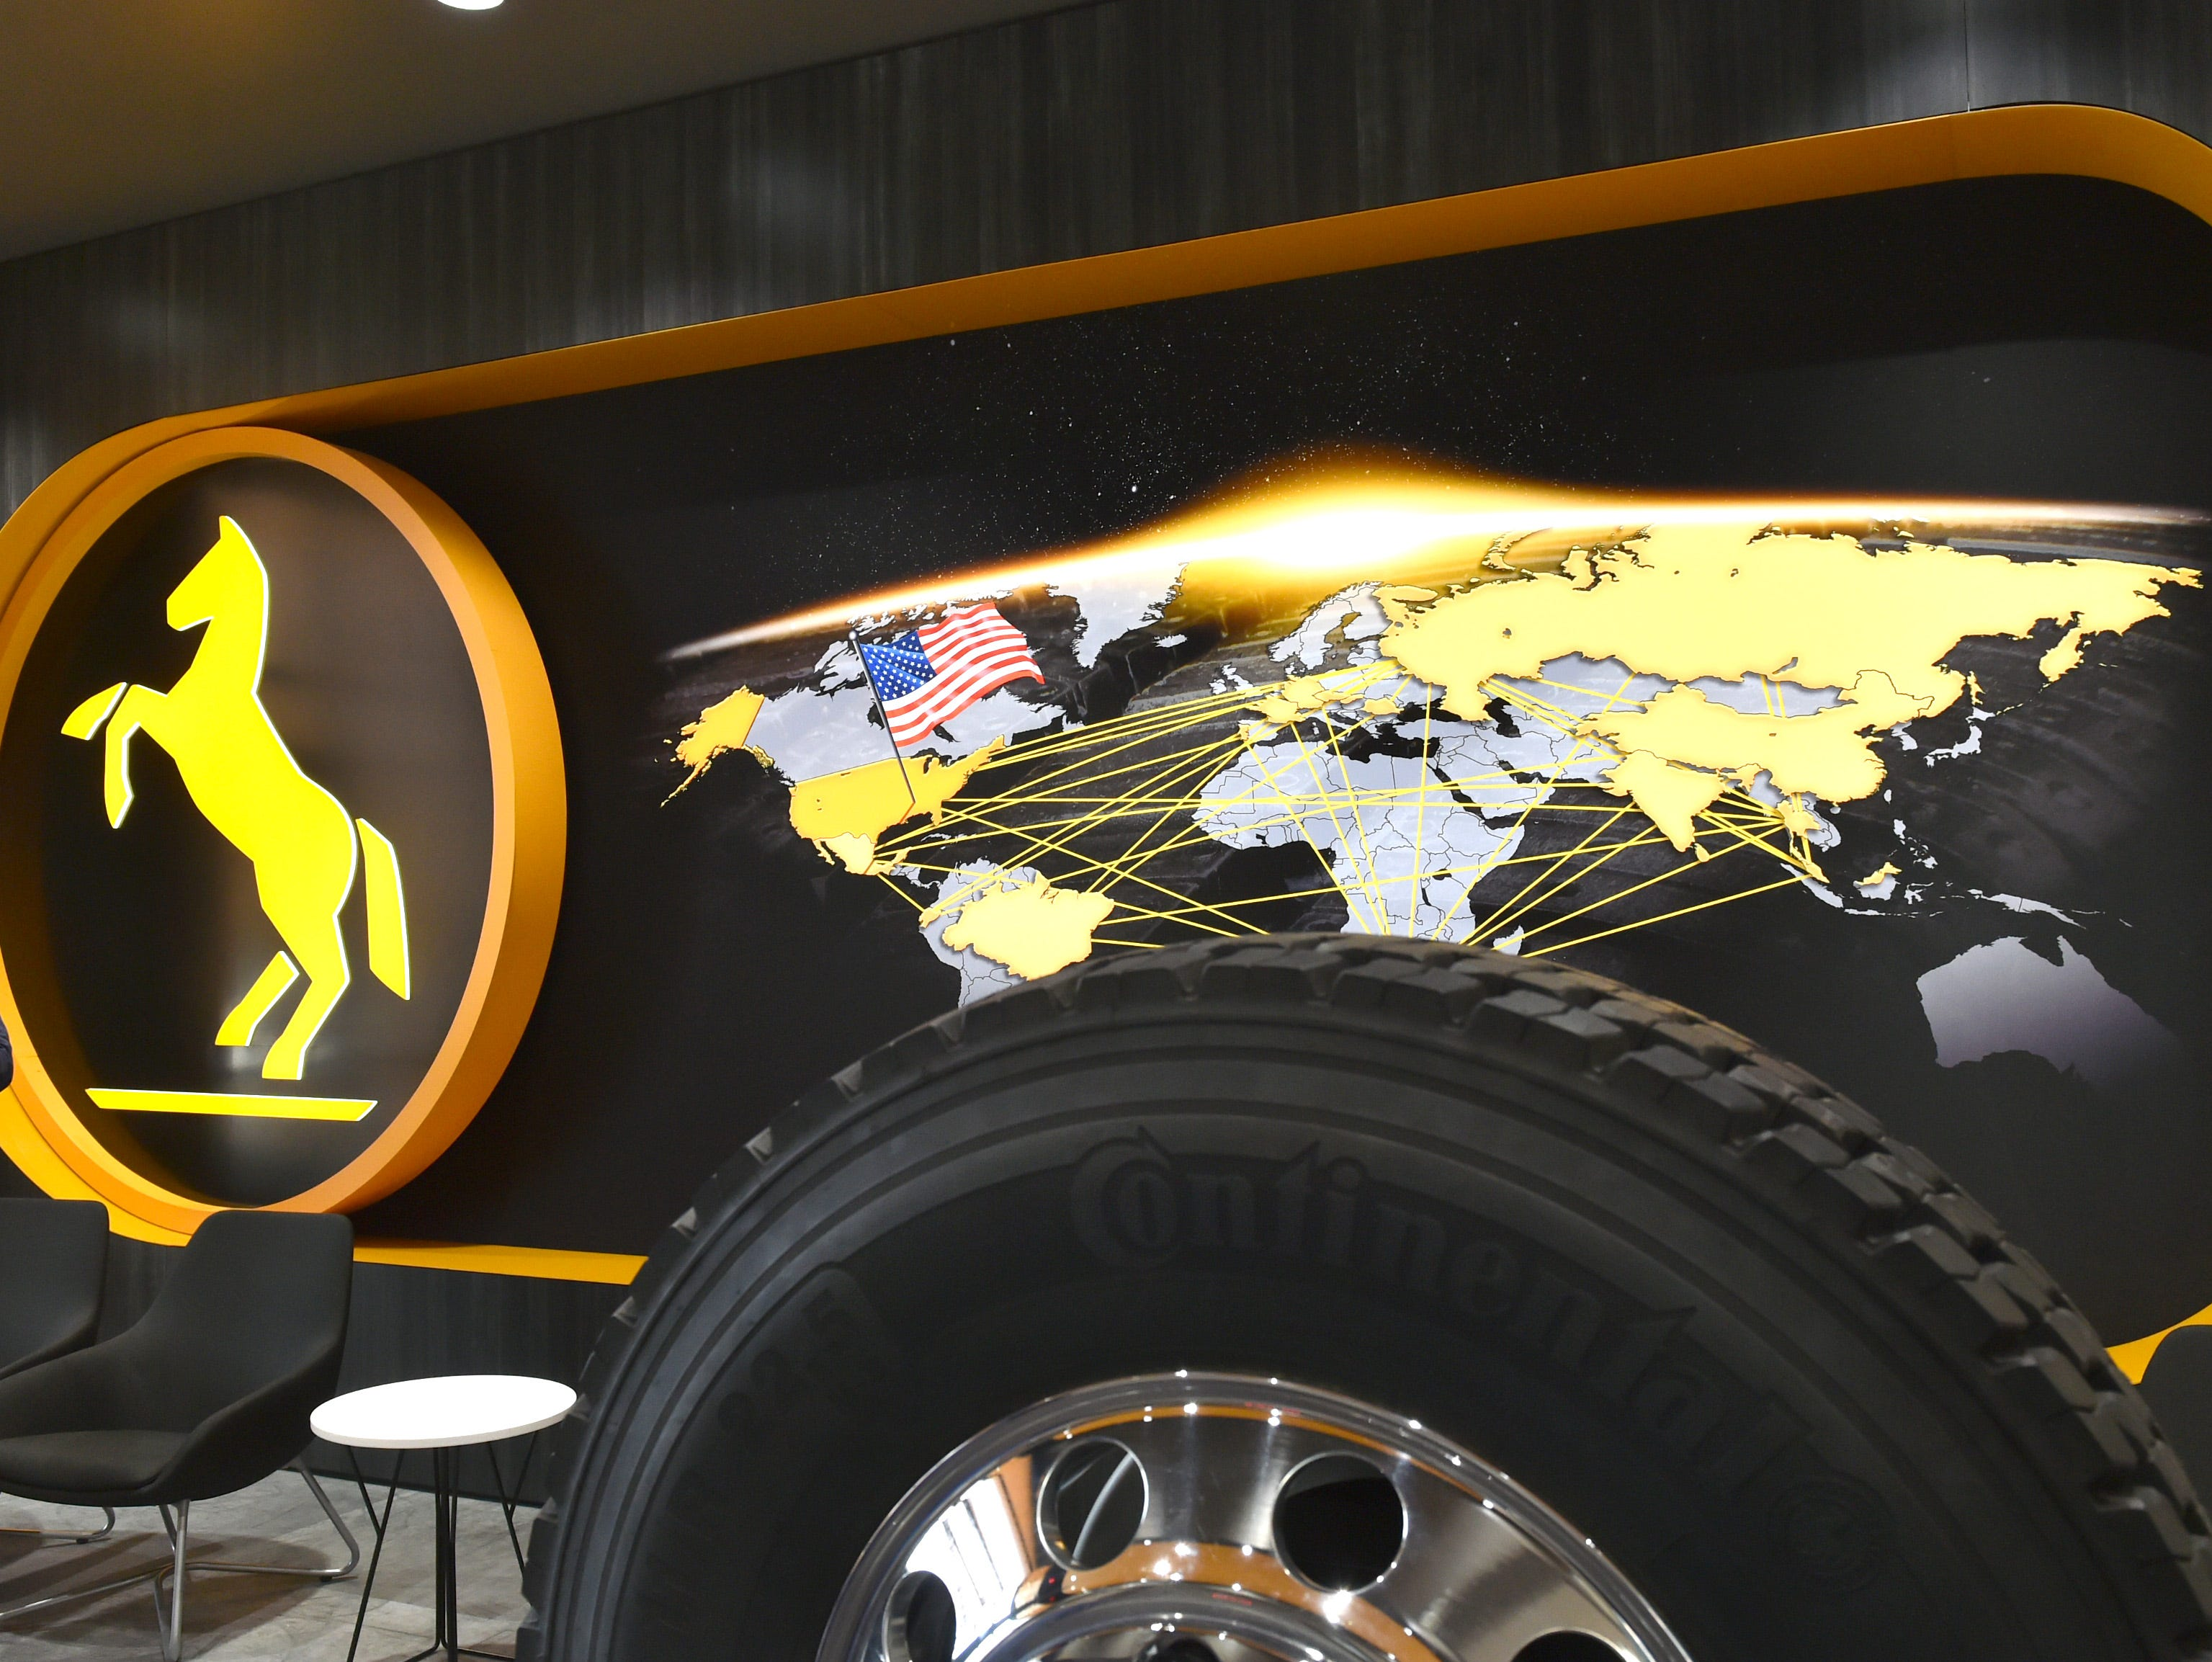 The lobby of Continental Tire training facility in Clinton, MS. At 23,000 square feet, the facility is used for job interviews, employee on-boarding, and professional development. Some 2,500 jobs are to be created by 2028. Friday, Feb. 8, 2019.